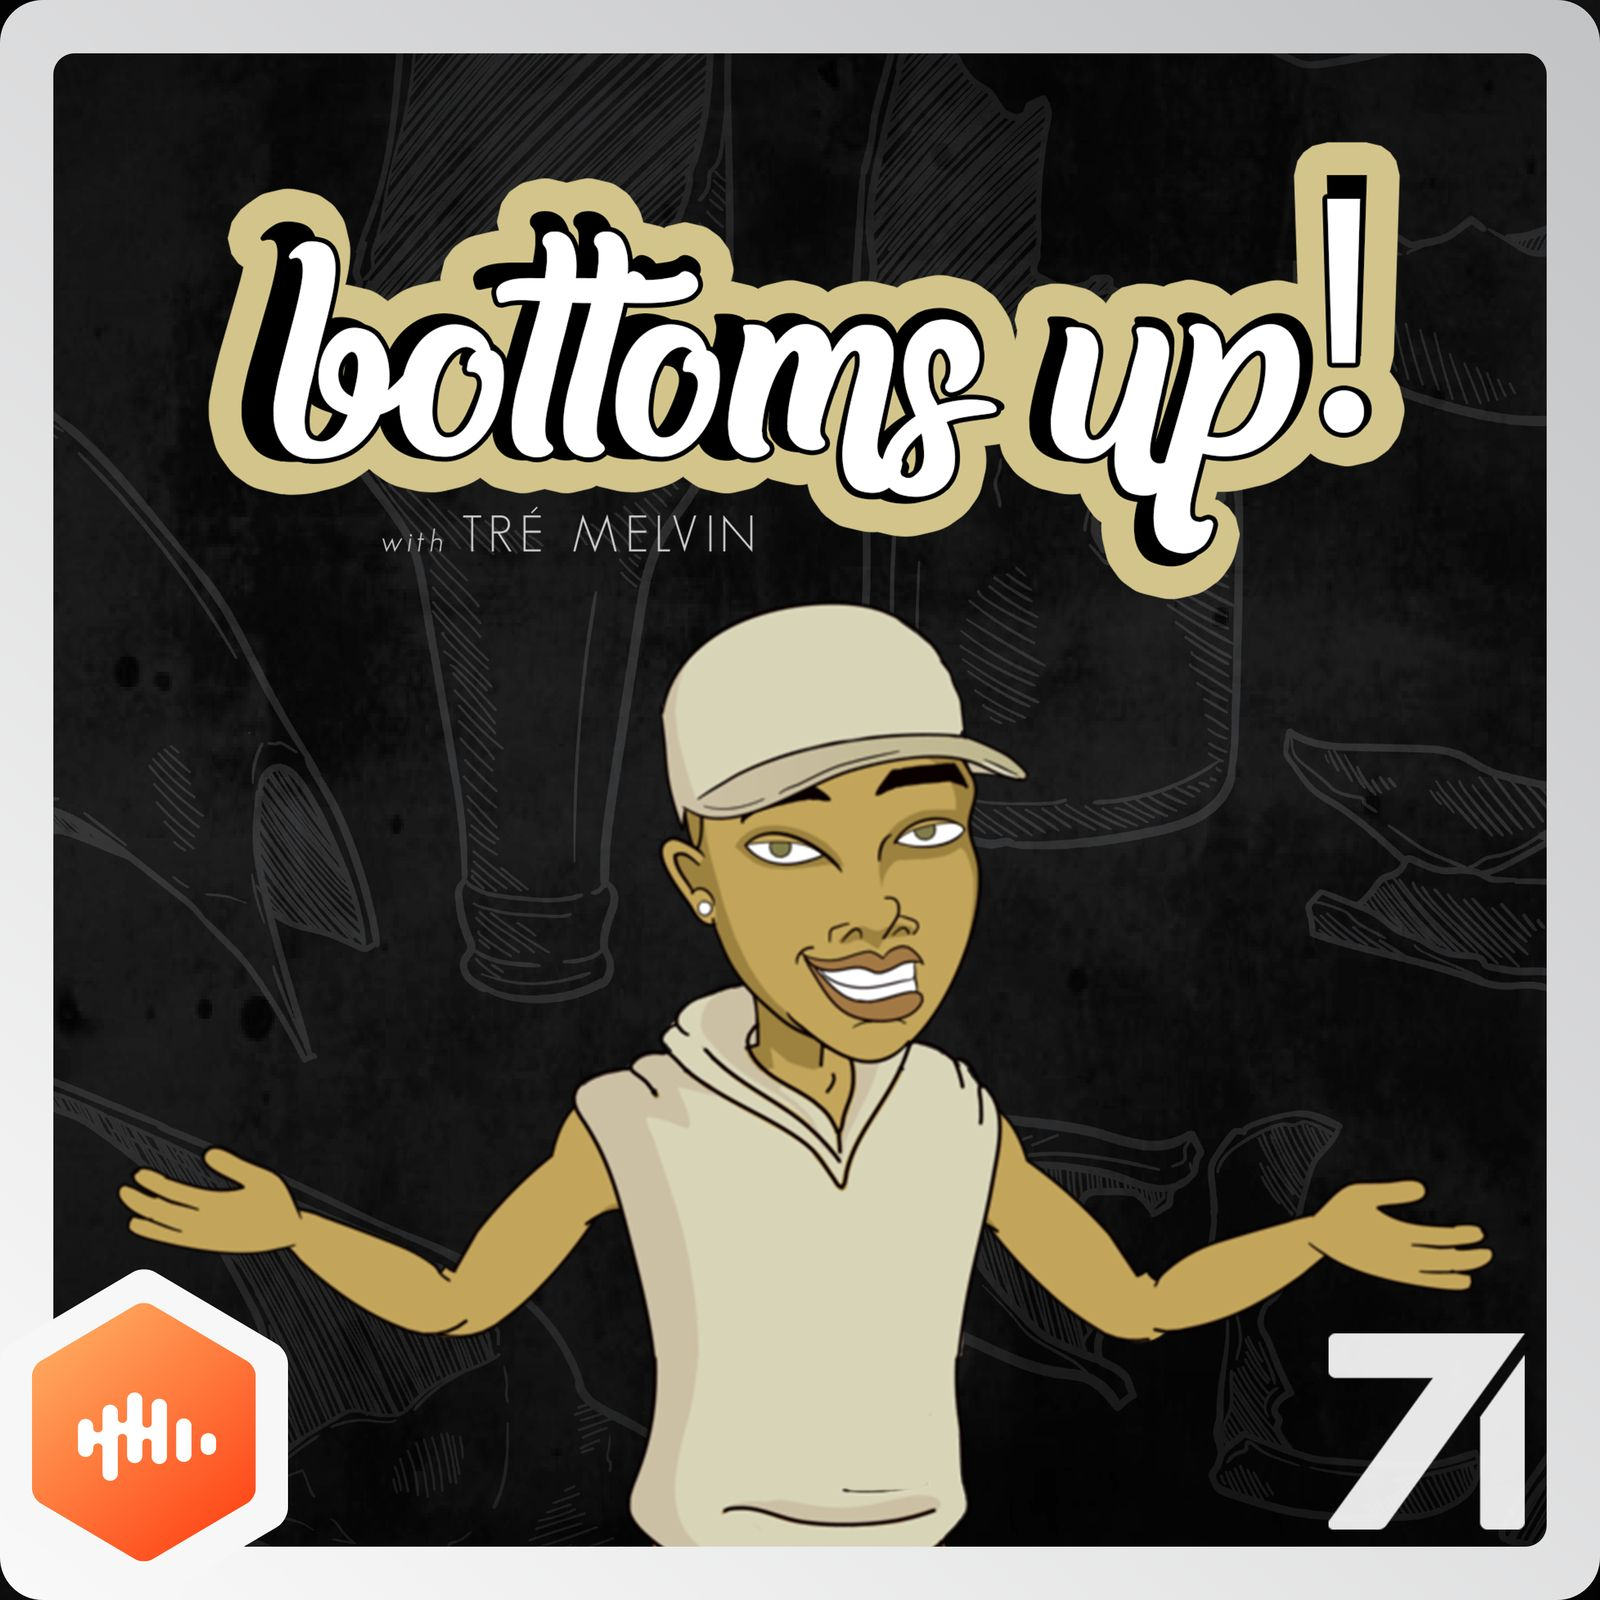 7: Journey Juice (feat. Kingsley) - Bottoms Up! with Tré Melvin